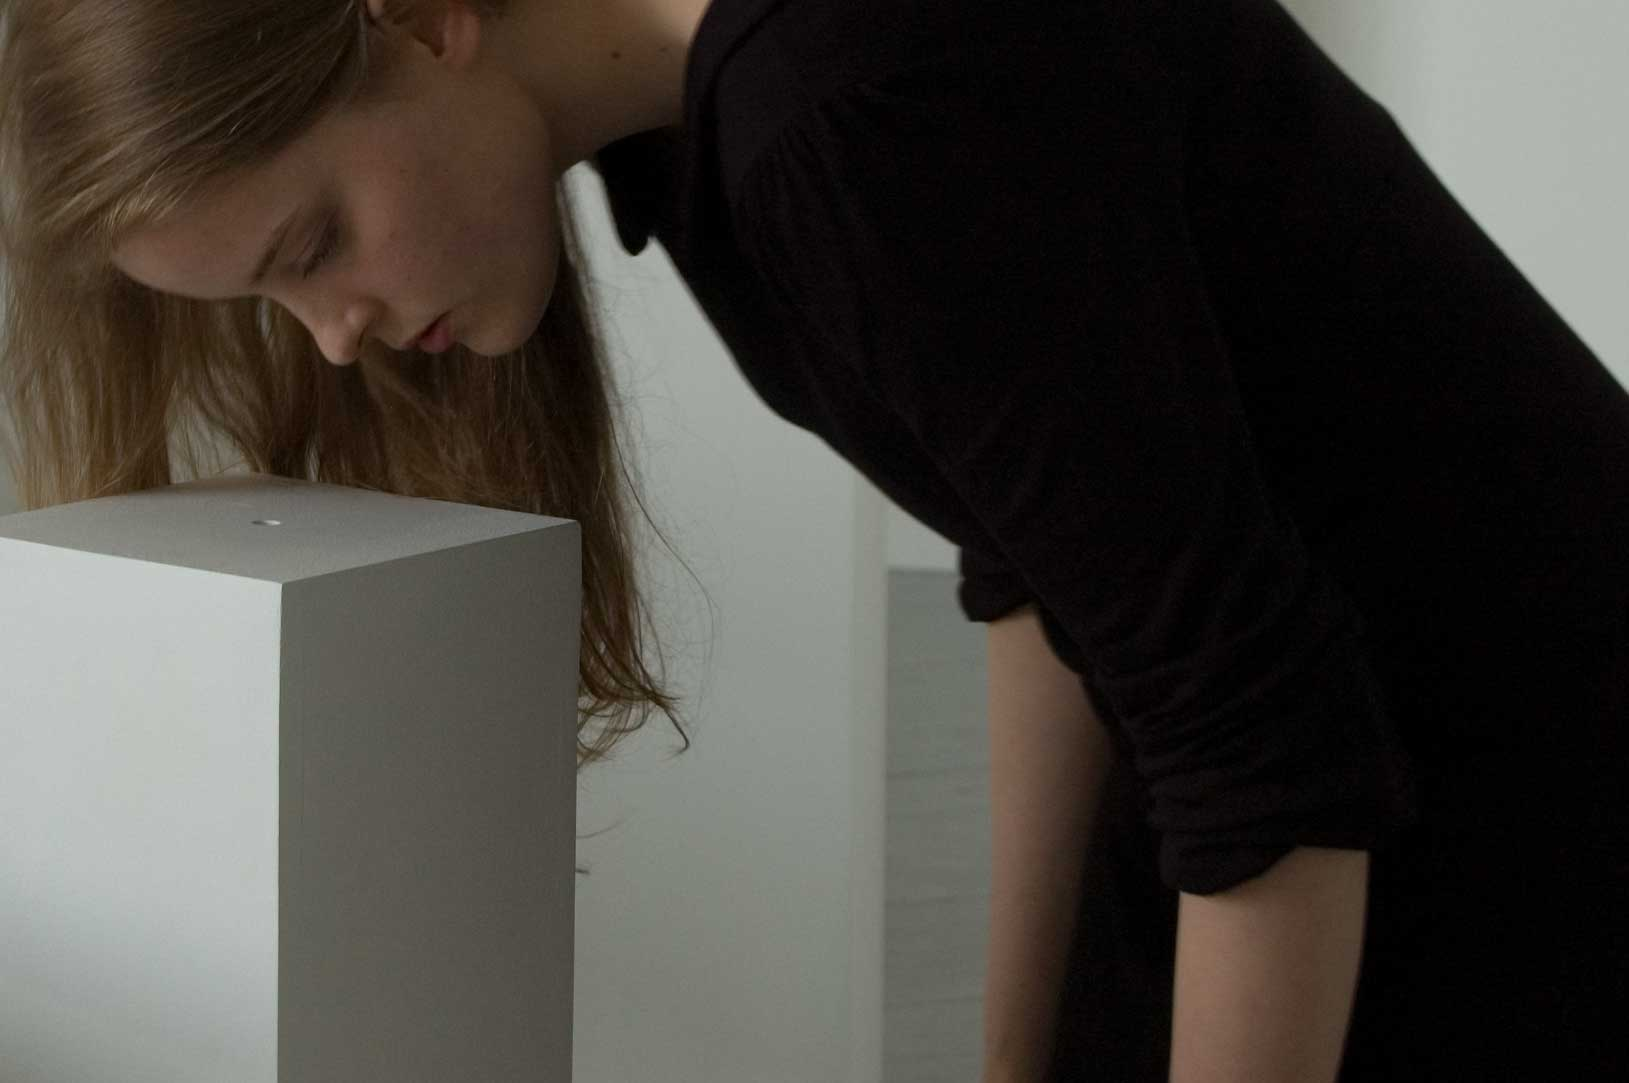 A woman leans over a plinth looking into a small hole in the top of the plinth.